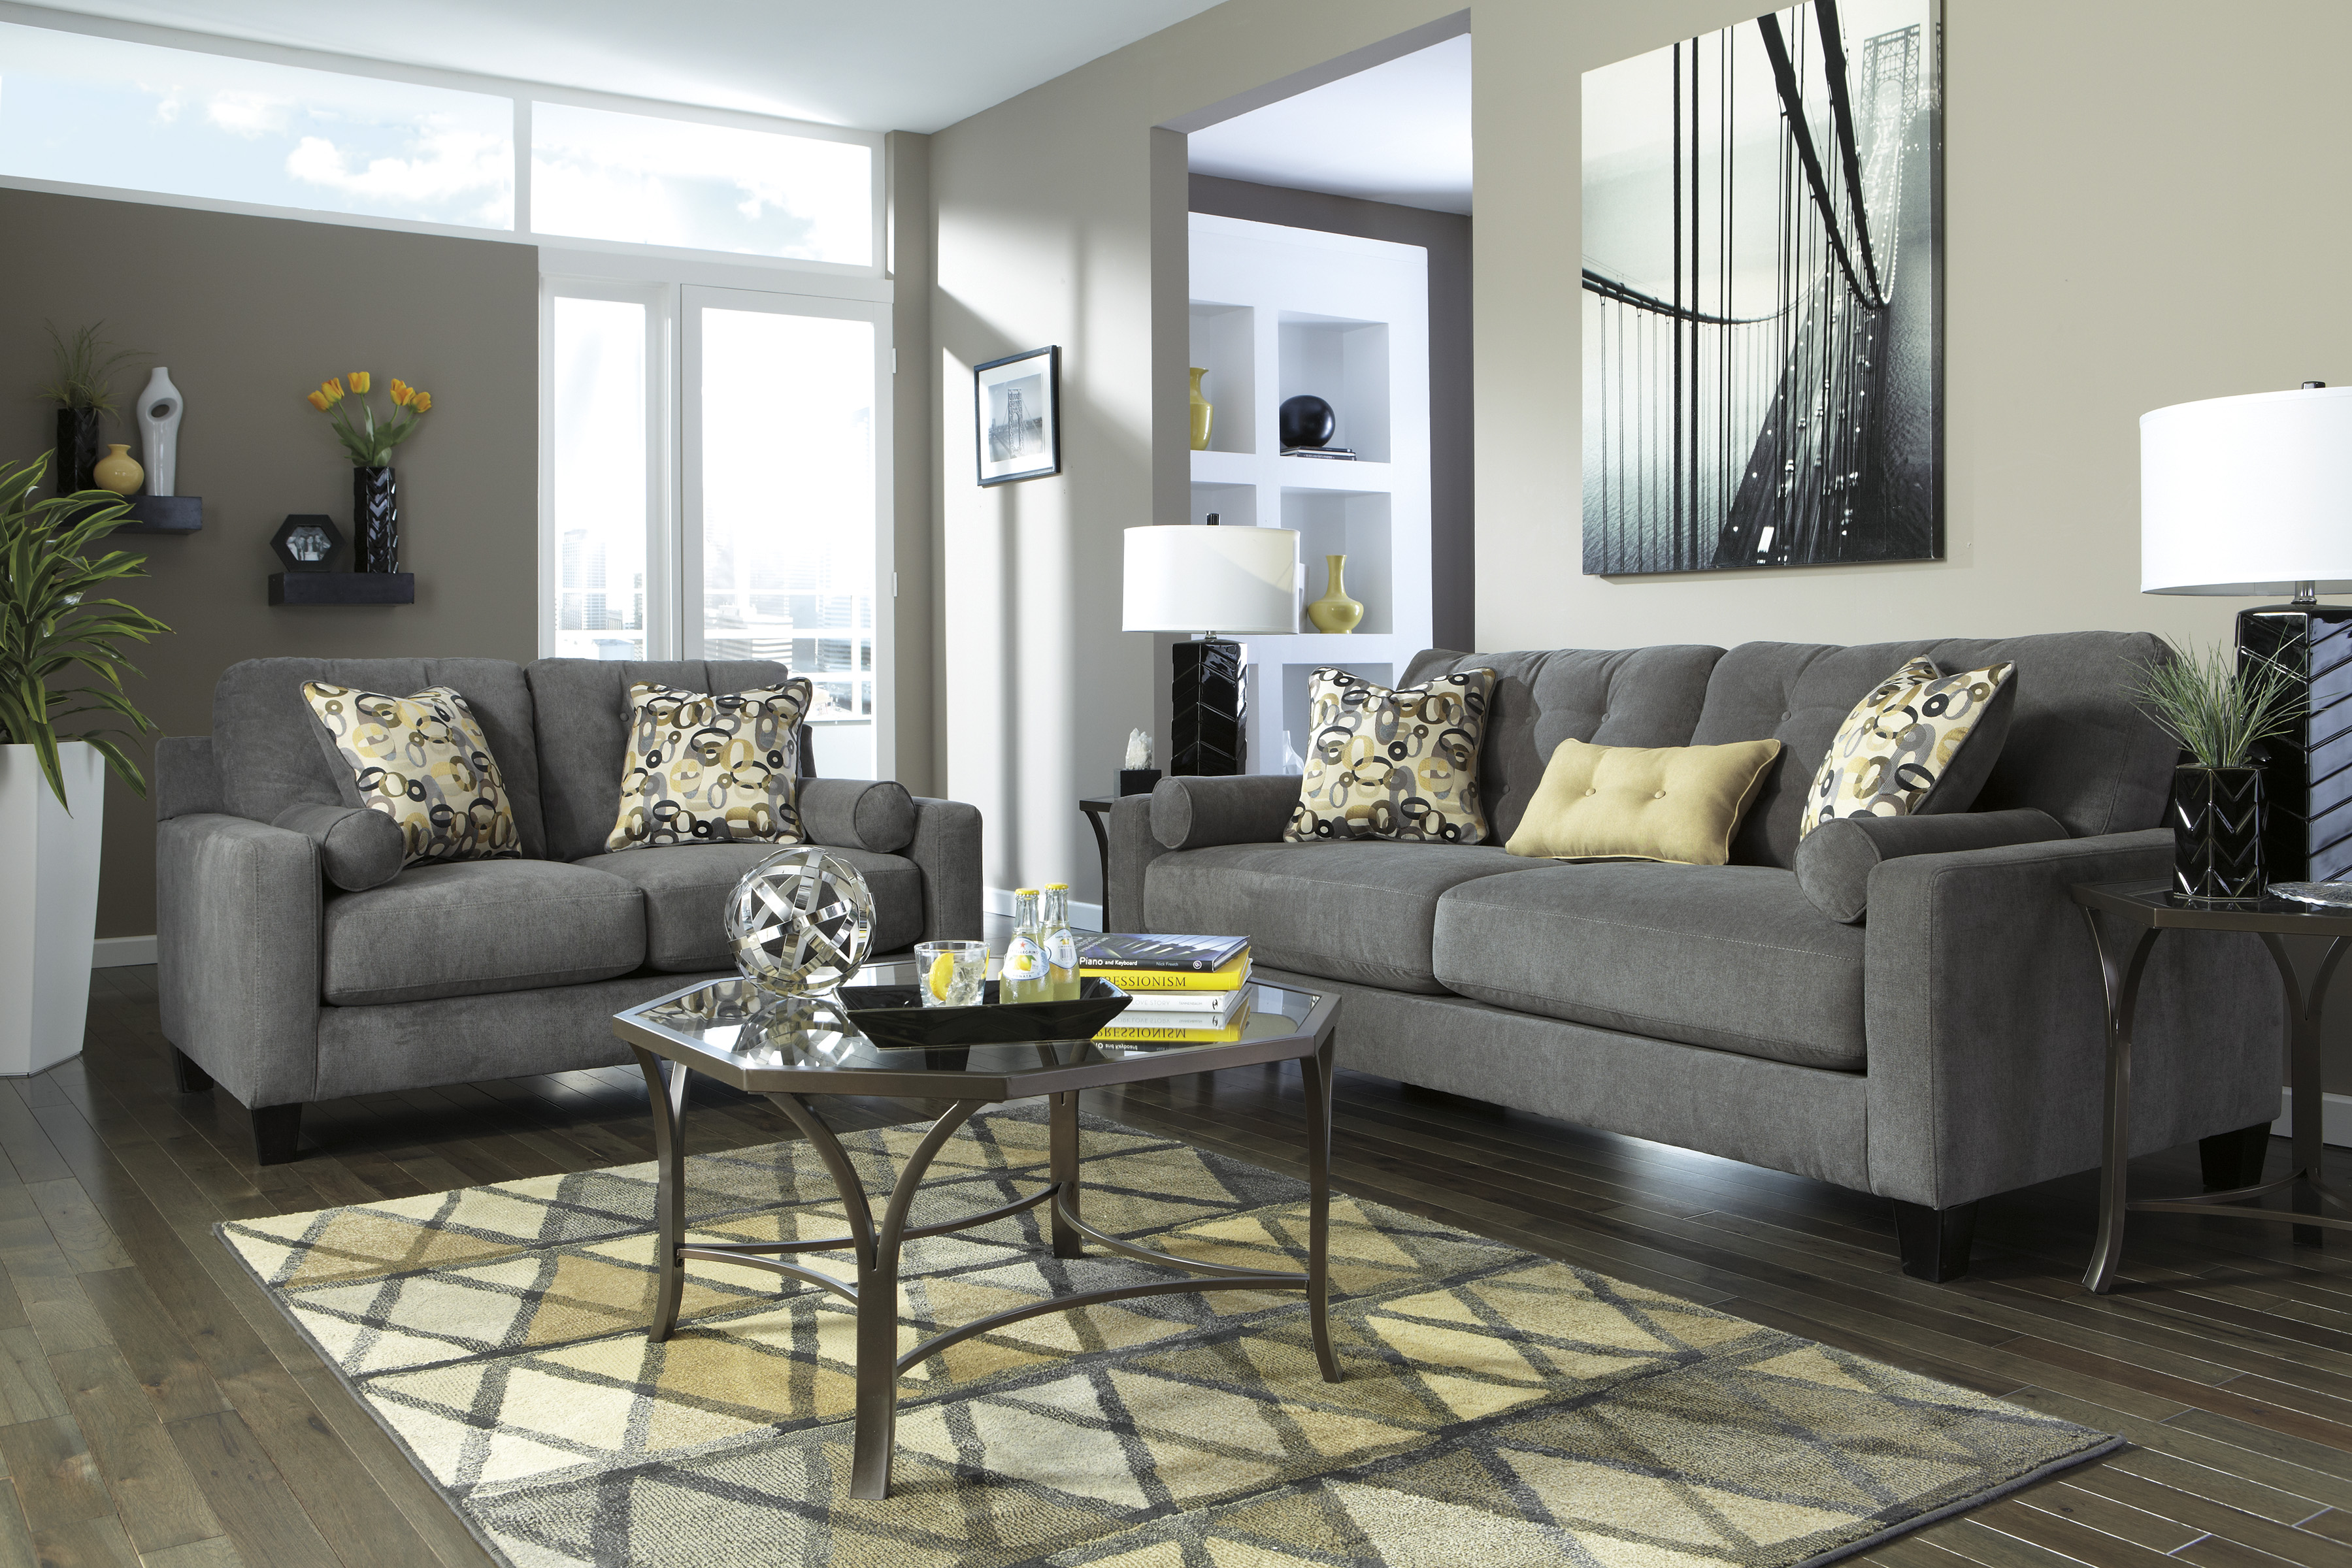 contemporary simmons flannel charcoal sofa concept-Beautiful Simmons Flannel Charcoal sofa Concept